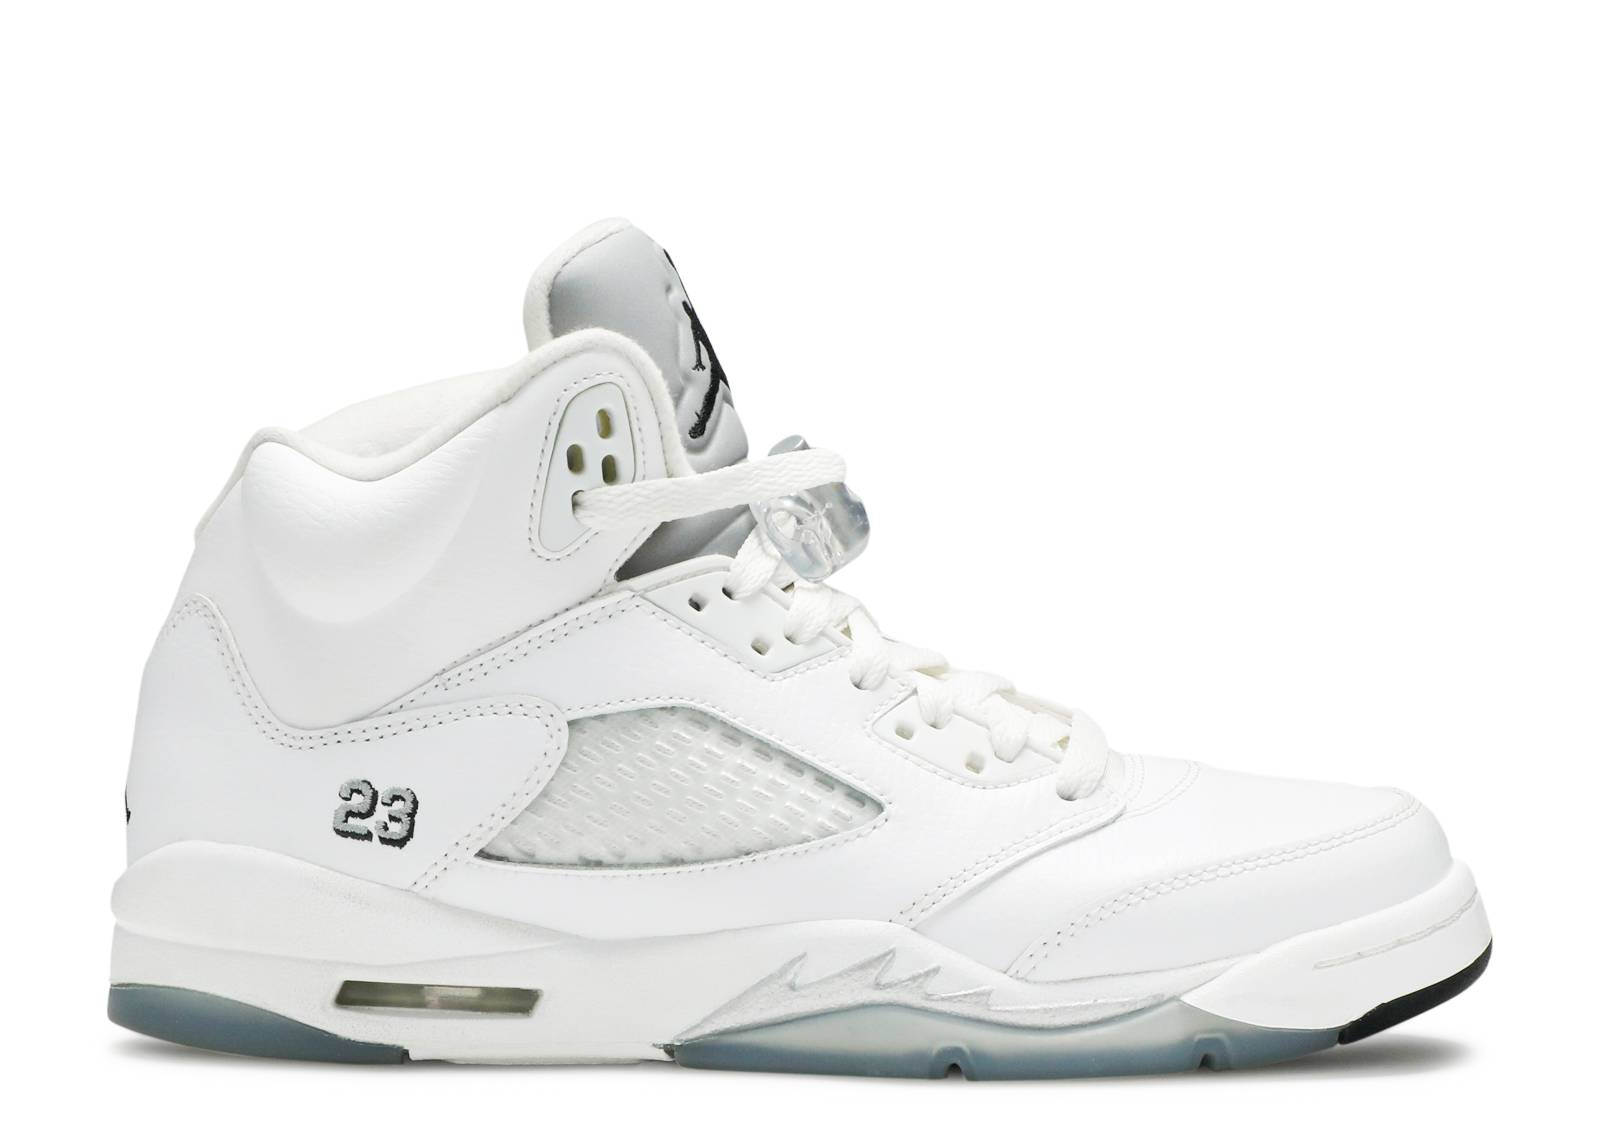 reputable site 43911 ee151 air jordan 5 retro bg (gs)